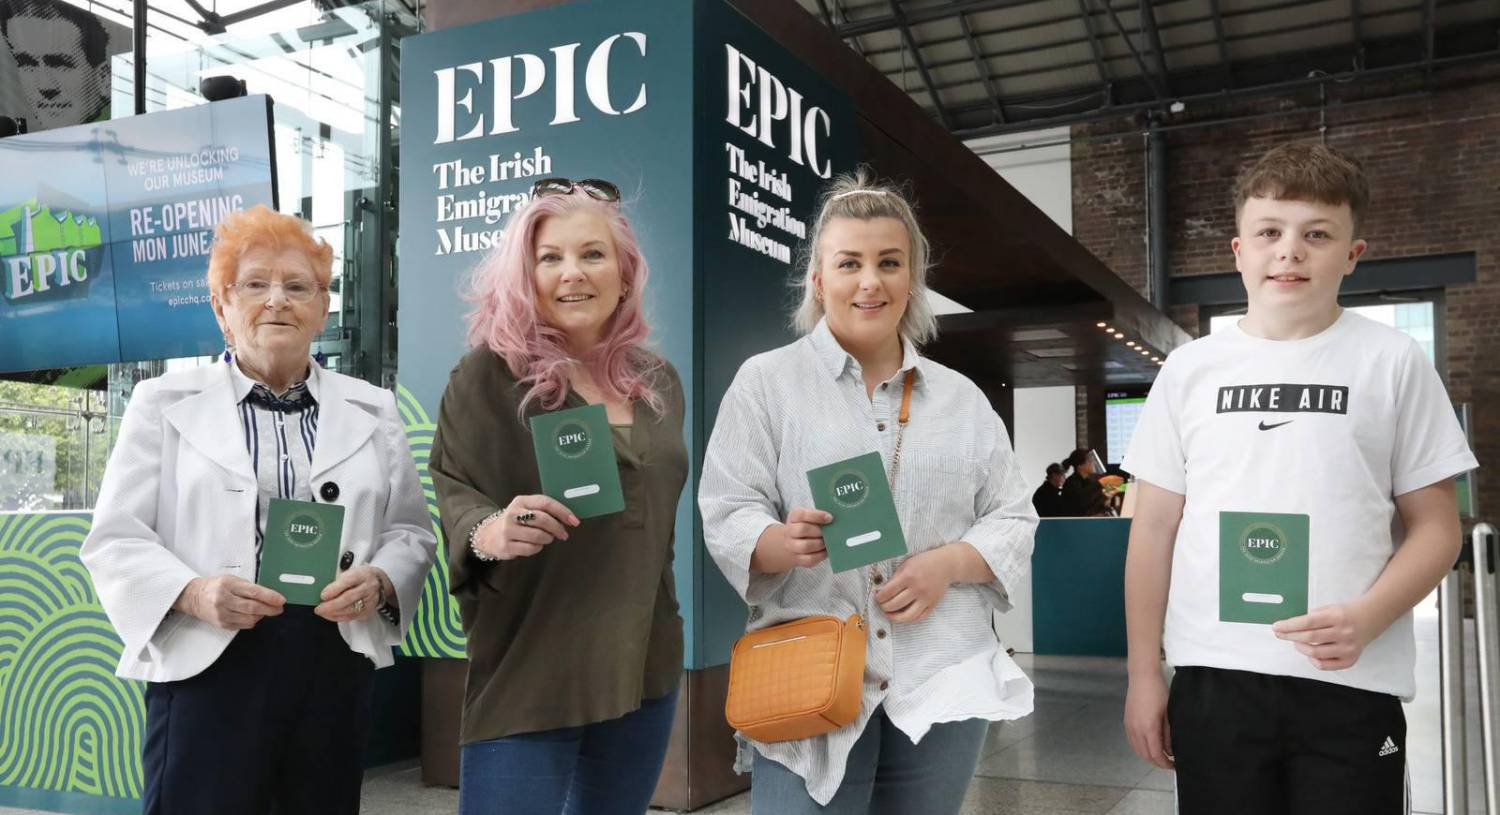 Epic Irish Emigration Museum returns as cultural centres reopen after Covid-19 lockdown